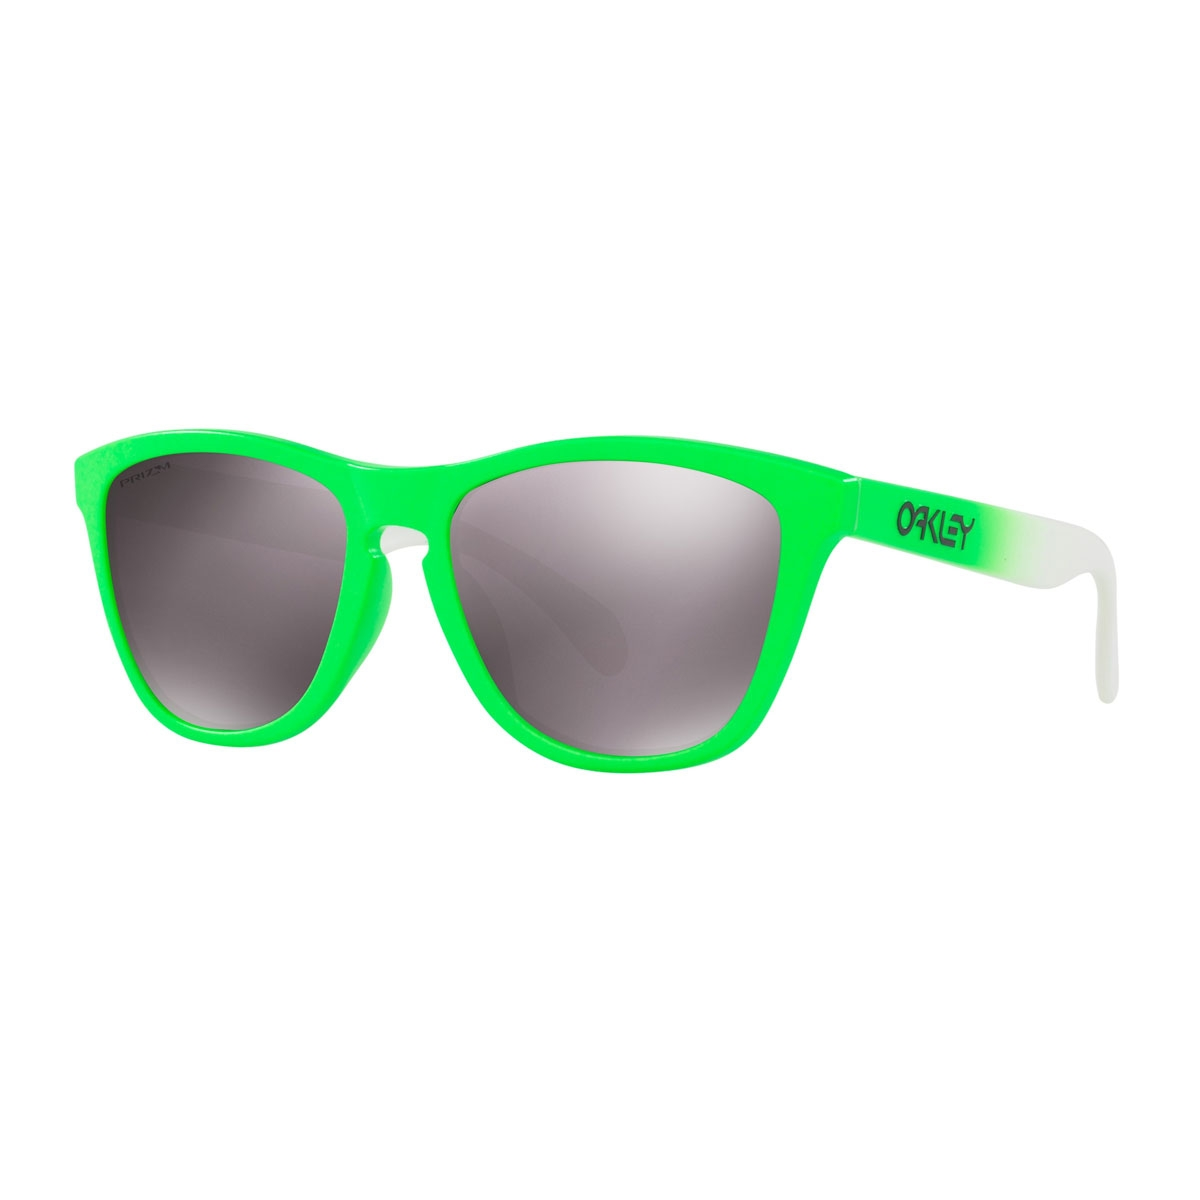 d52ed5fdd43 Image of Oakley Frogskins Prizm Daily Polarized Sunglasses - Green Fade  Frame Prizm Daily Polarized